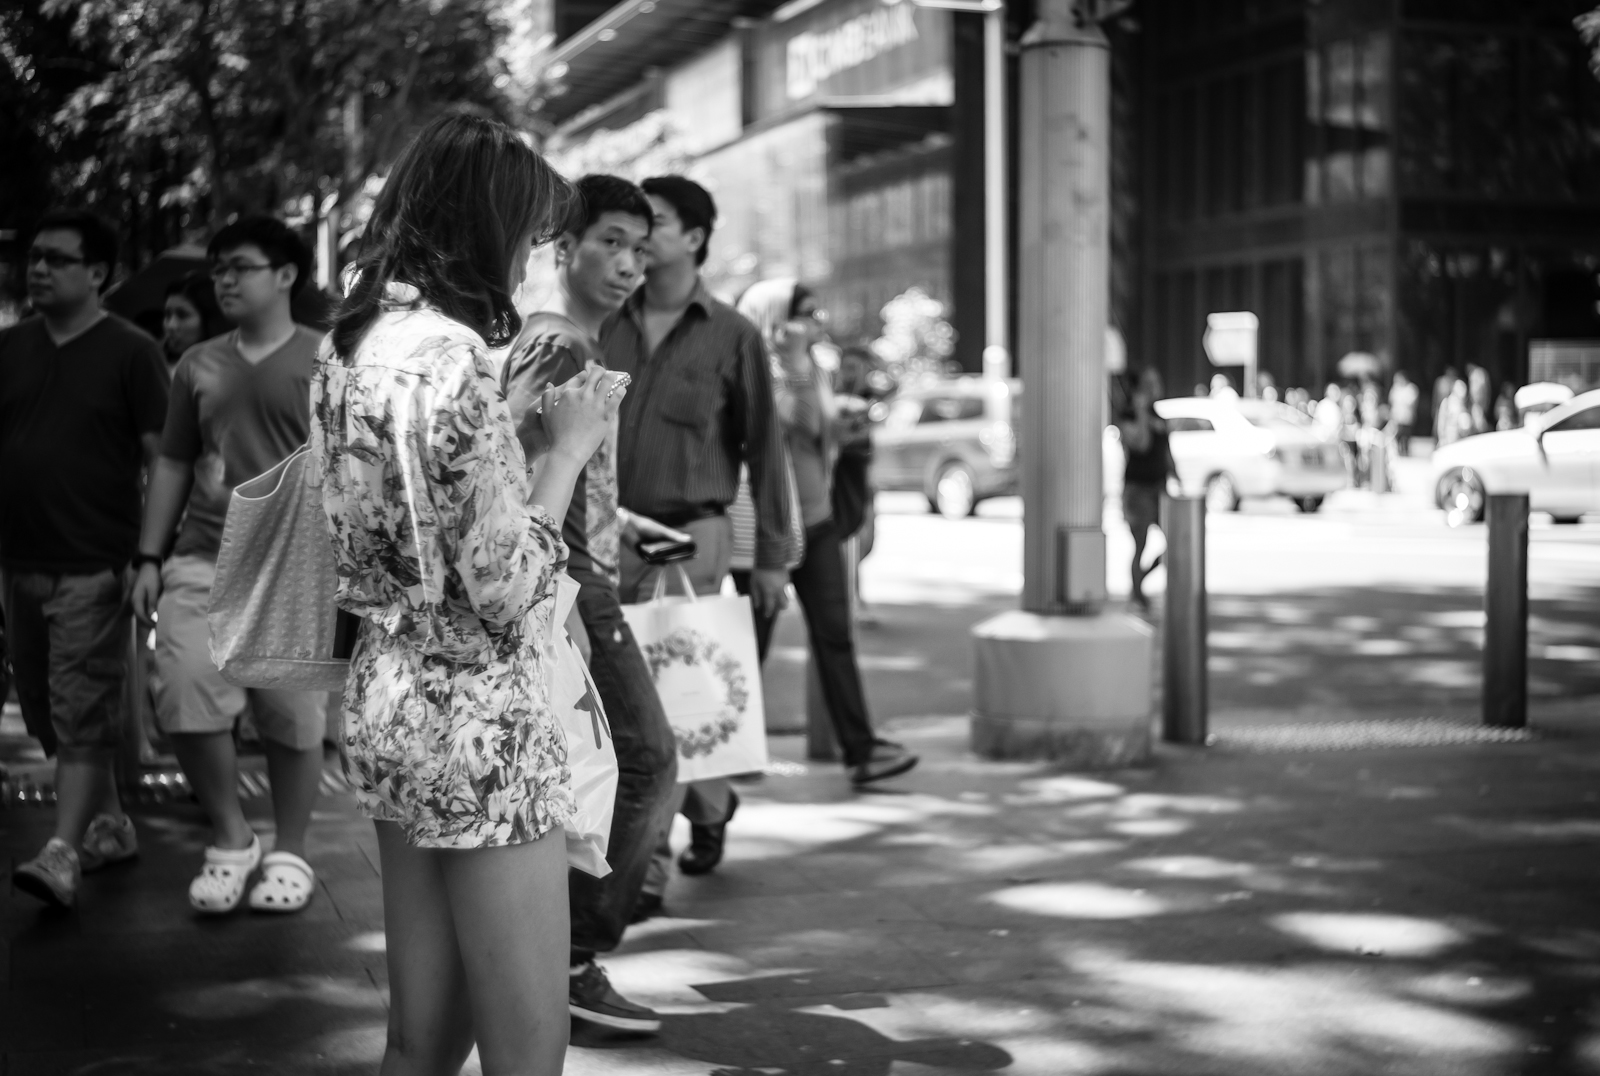 Street photography - girl in floral clothing standing in the middle of the side walk